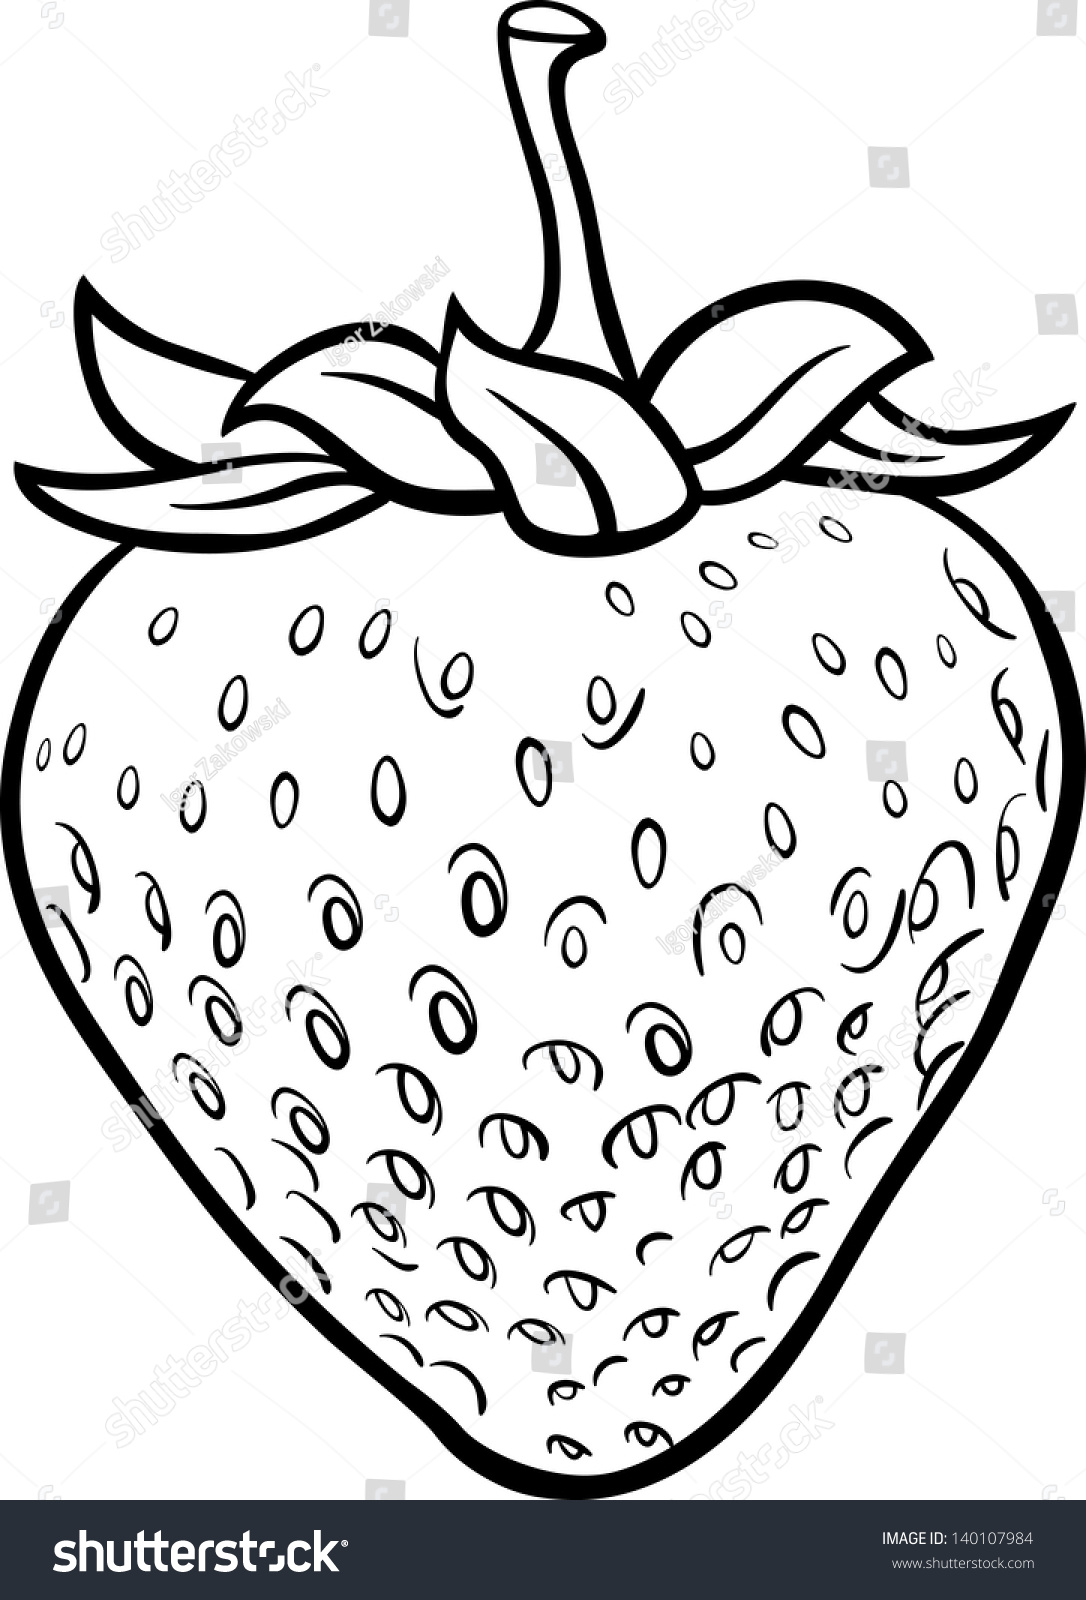 Fruit bowl coloring pictures - Galerry Fruit Bowl Coloring Page